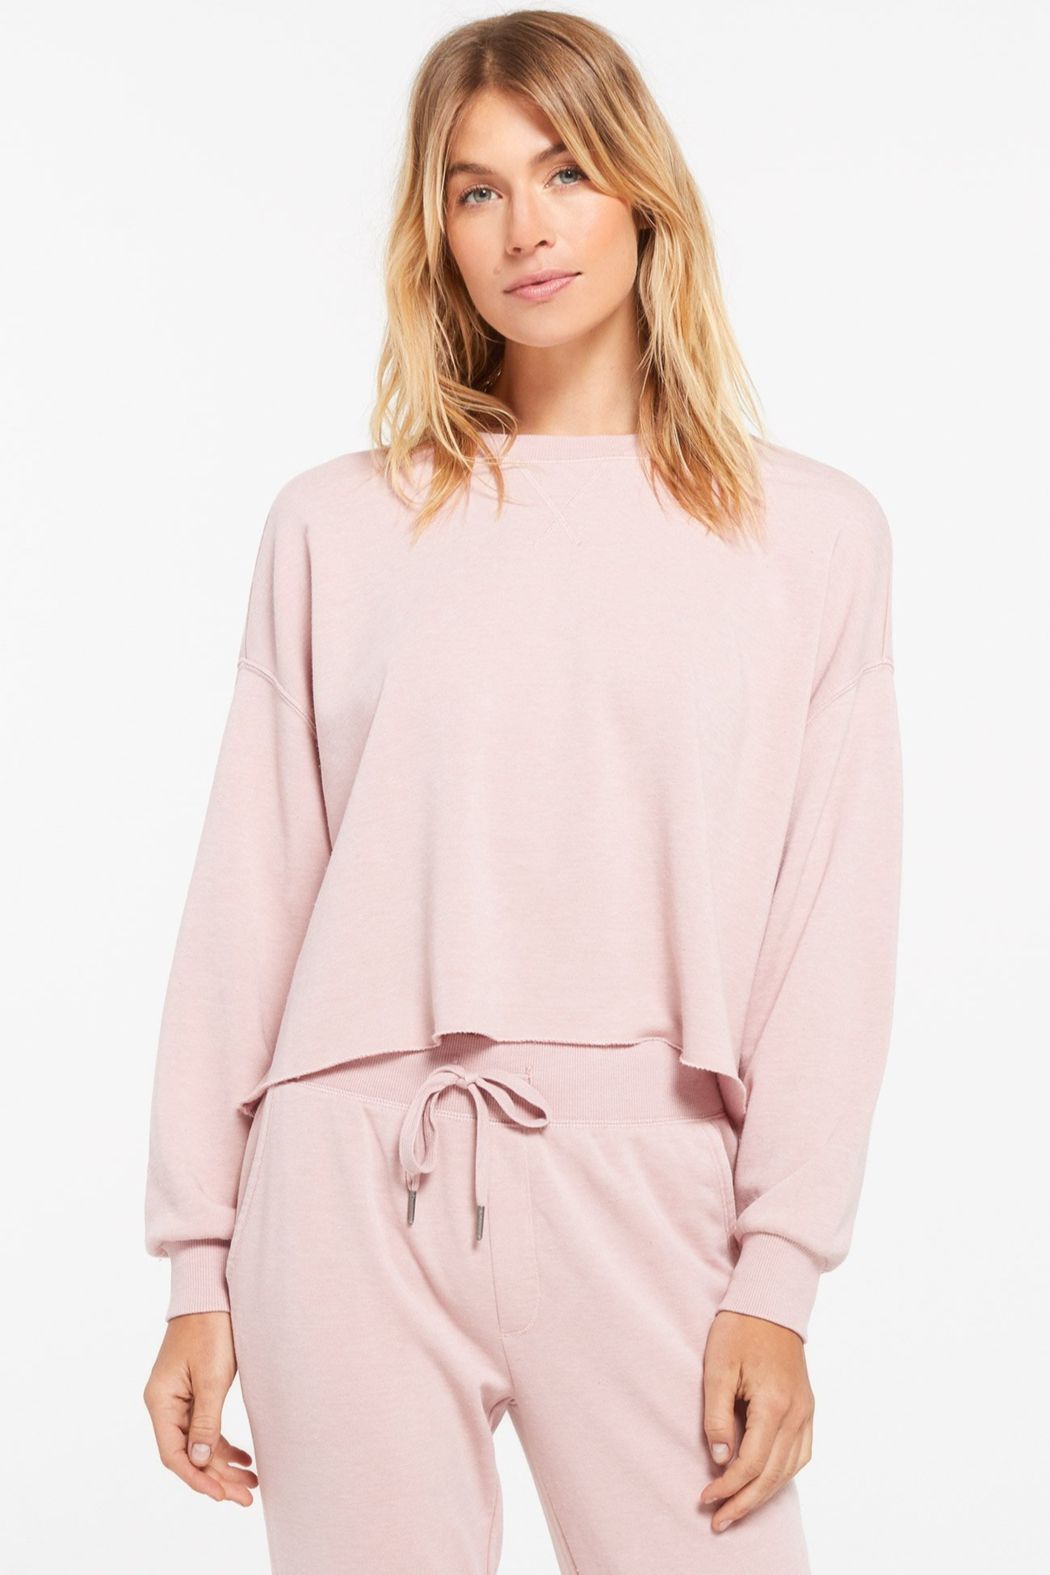 z supply Izzy Pullover Sweater - Front Cropped Image